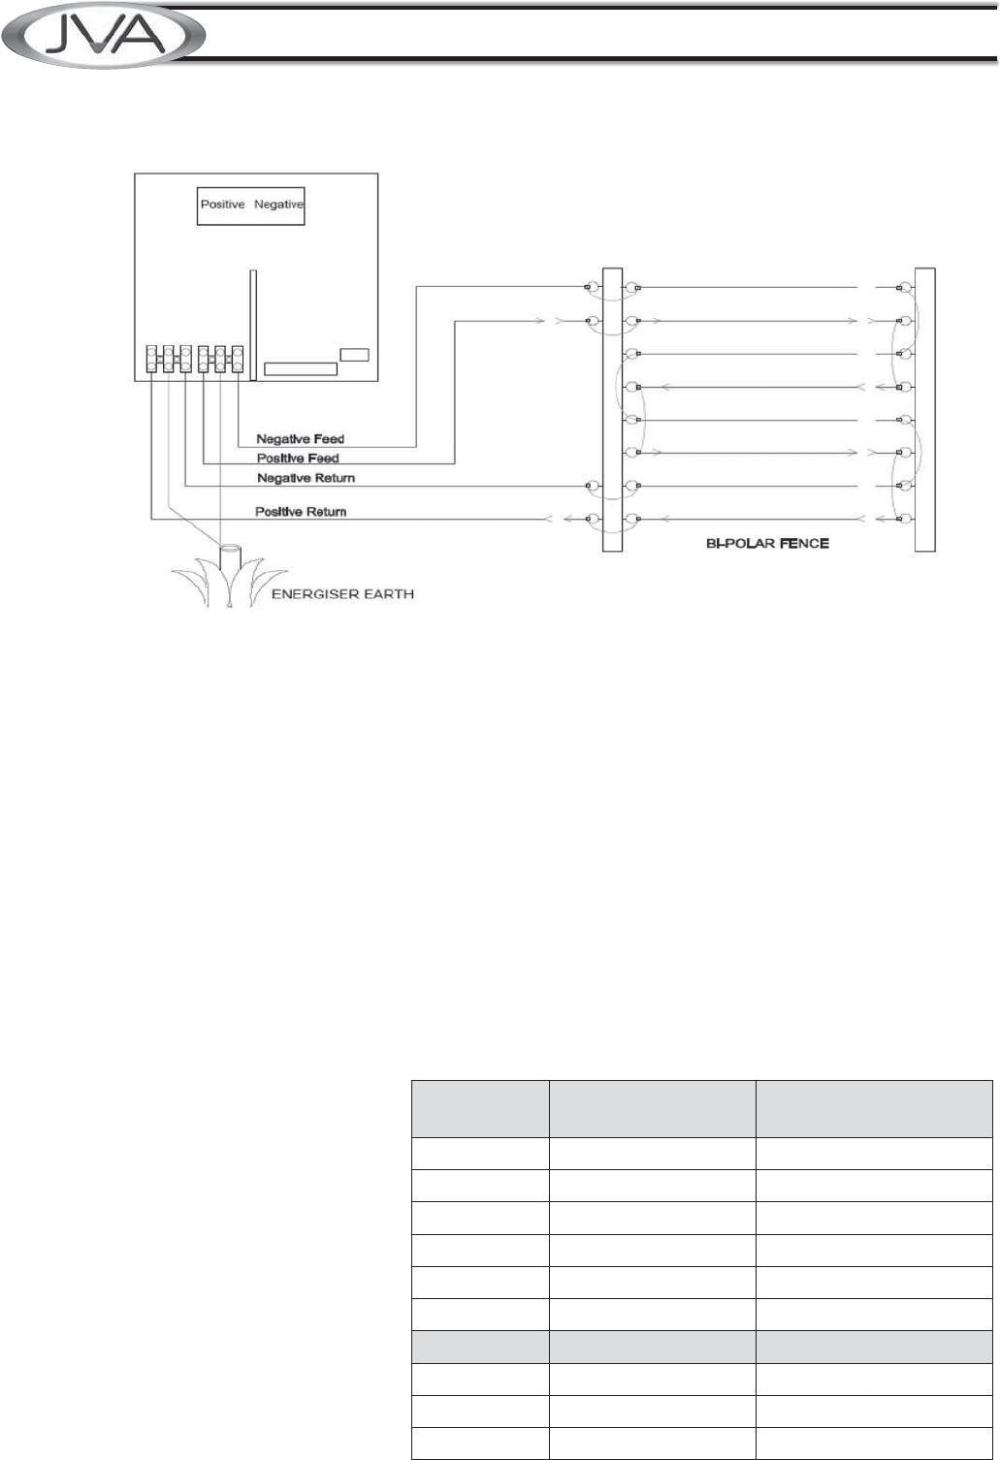 medium resolution of jva electric fence systems 3 example fence wiring diagram